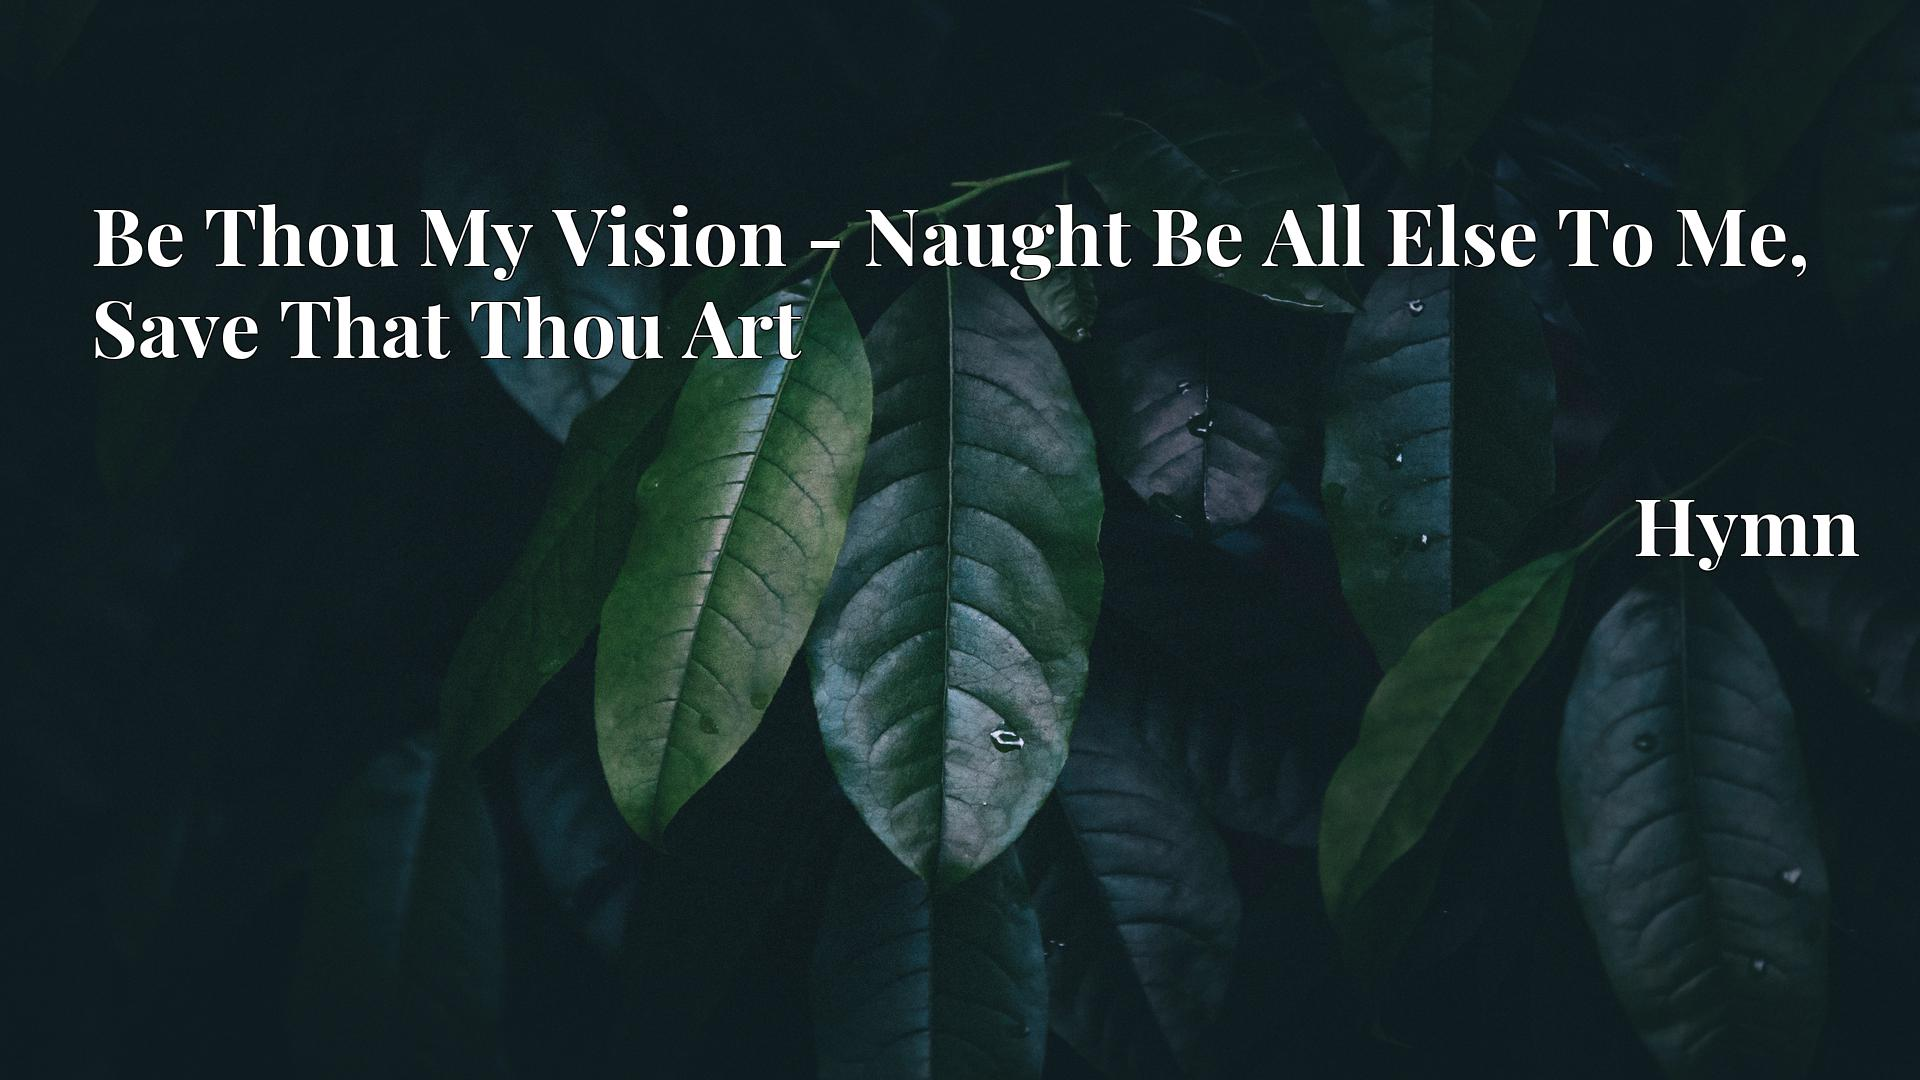 Be Thou My Vision - Naught Be All Else To Me, Save That Thou Art - Hymn